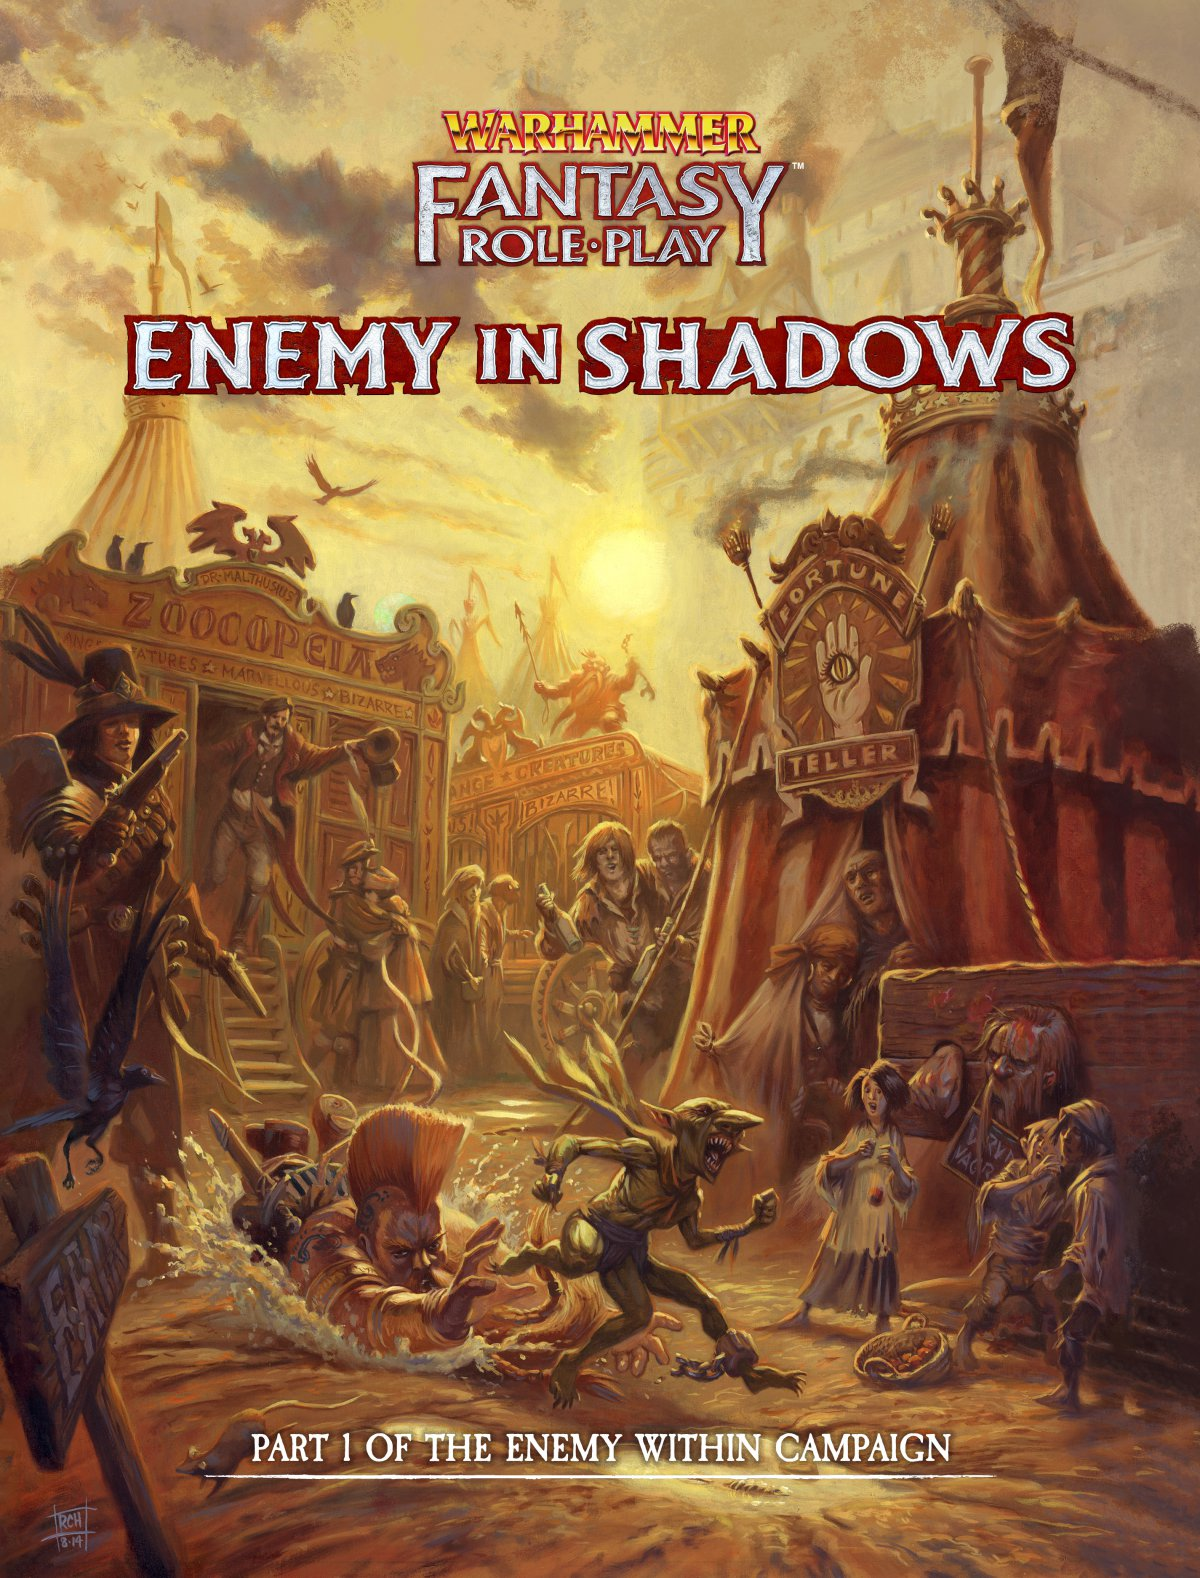 The Enemy Within Campaign